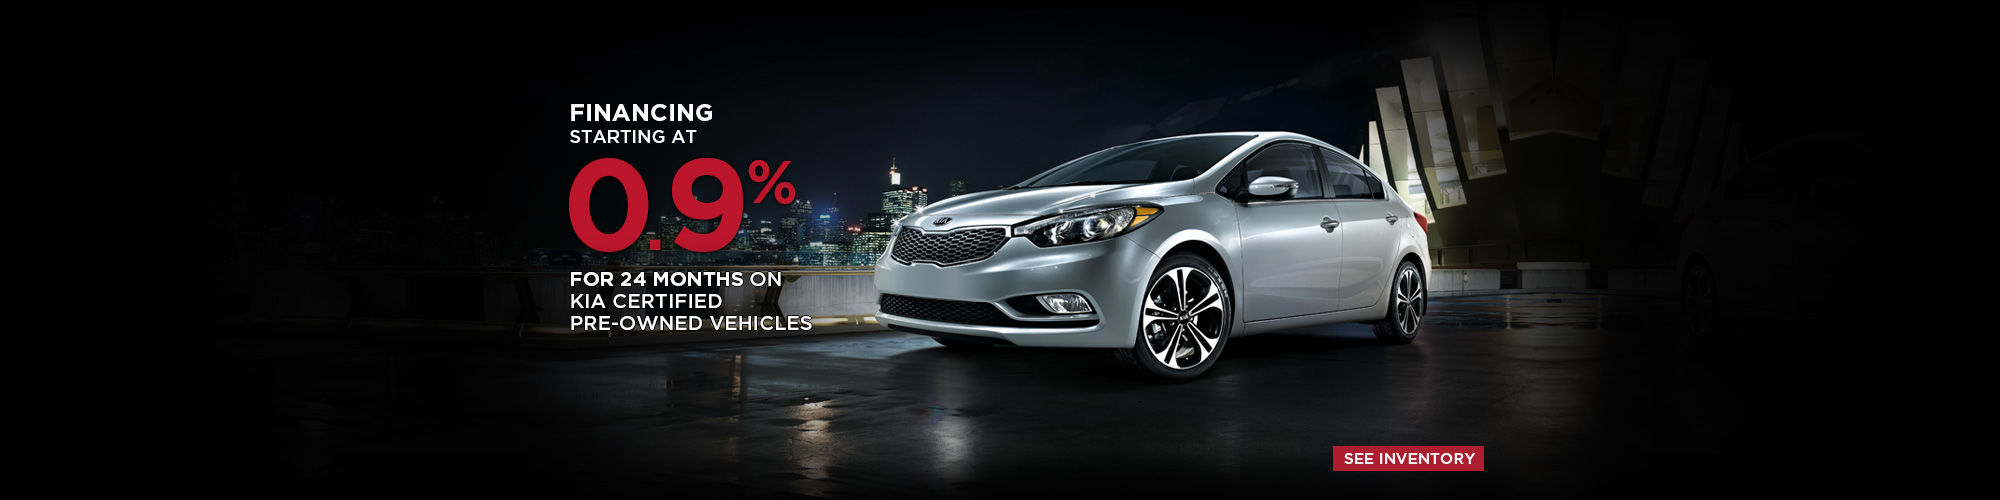 Kia Certified Pre-Owned Vehicles